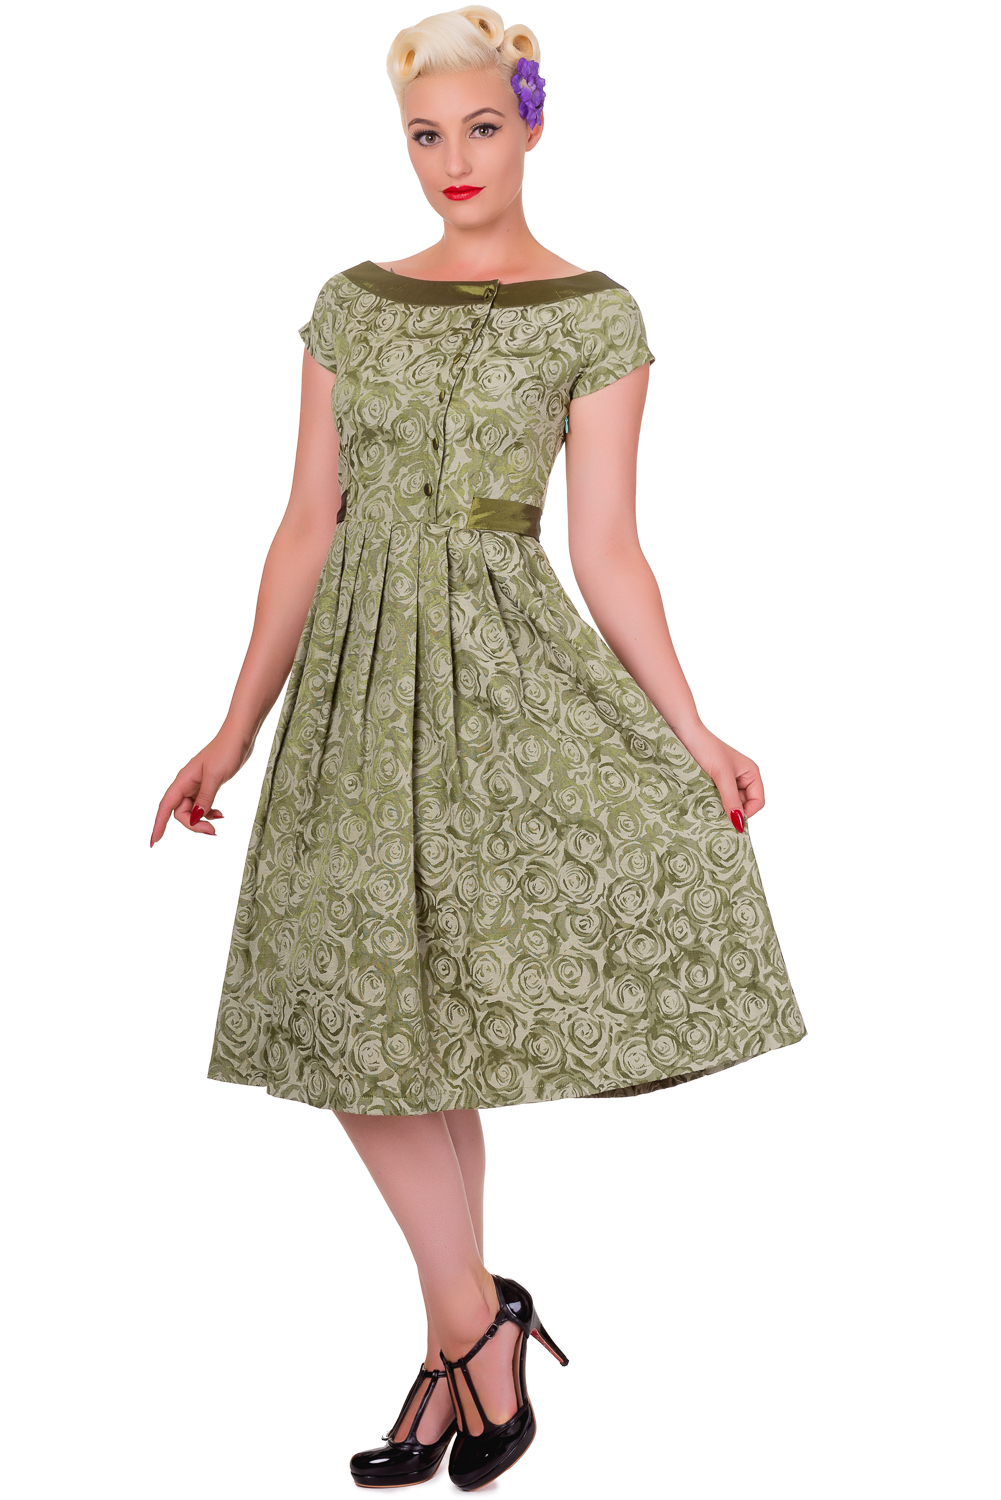 banned day of green dress vintage 1950s prom